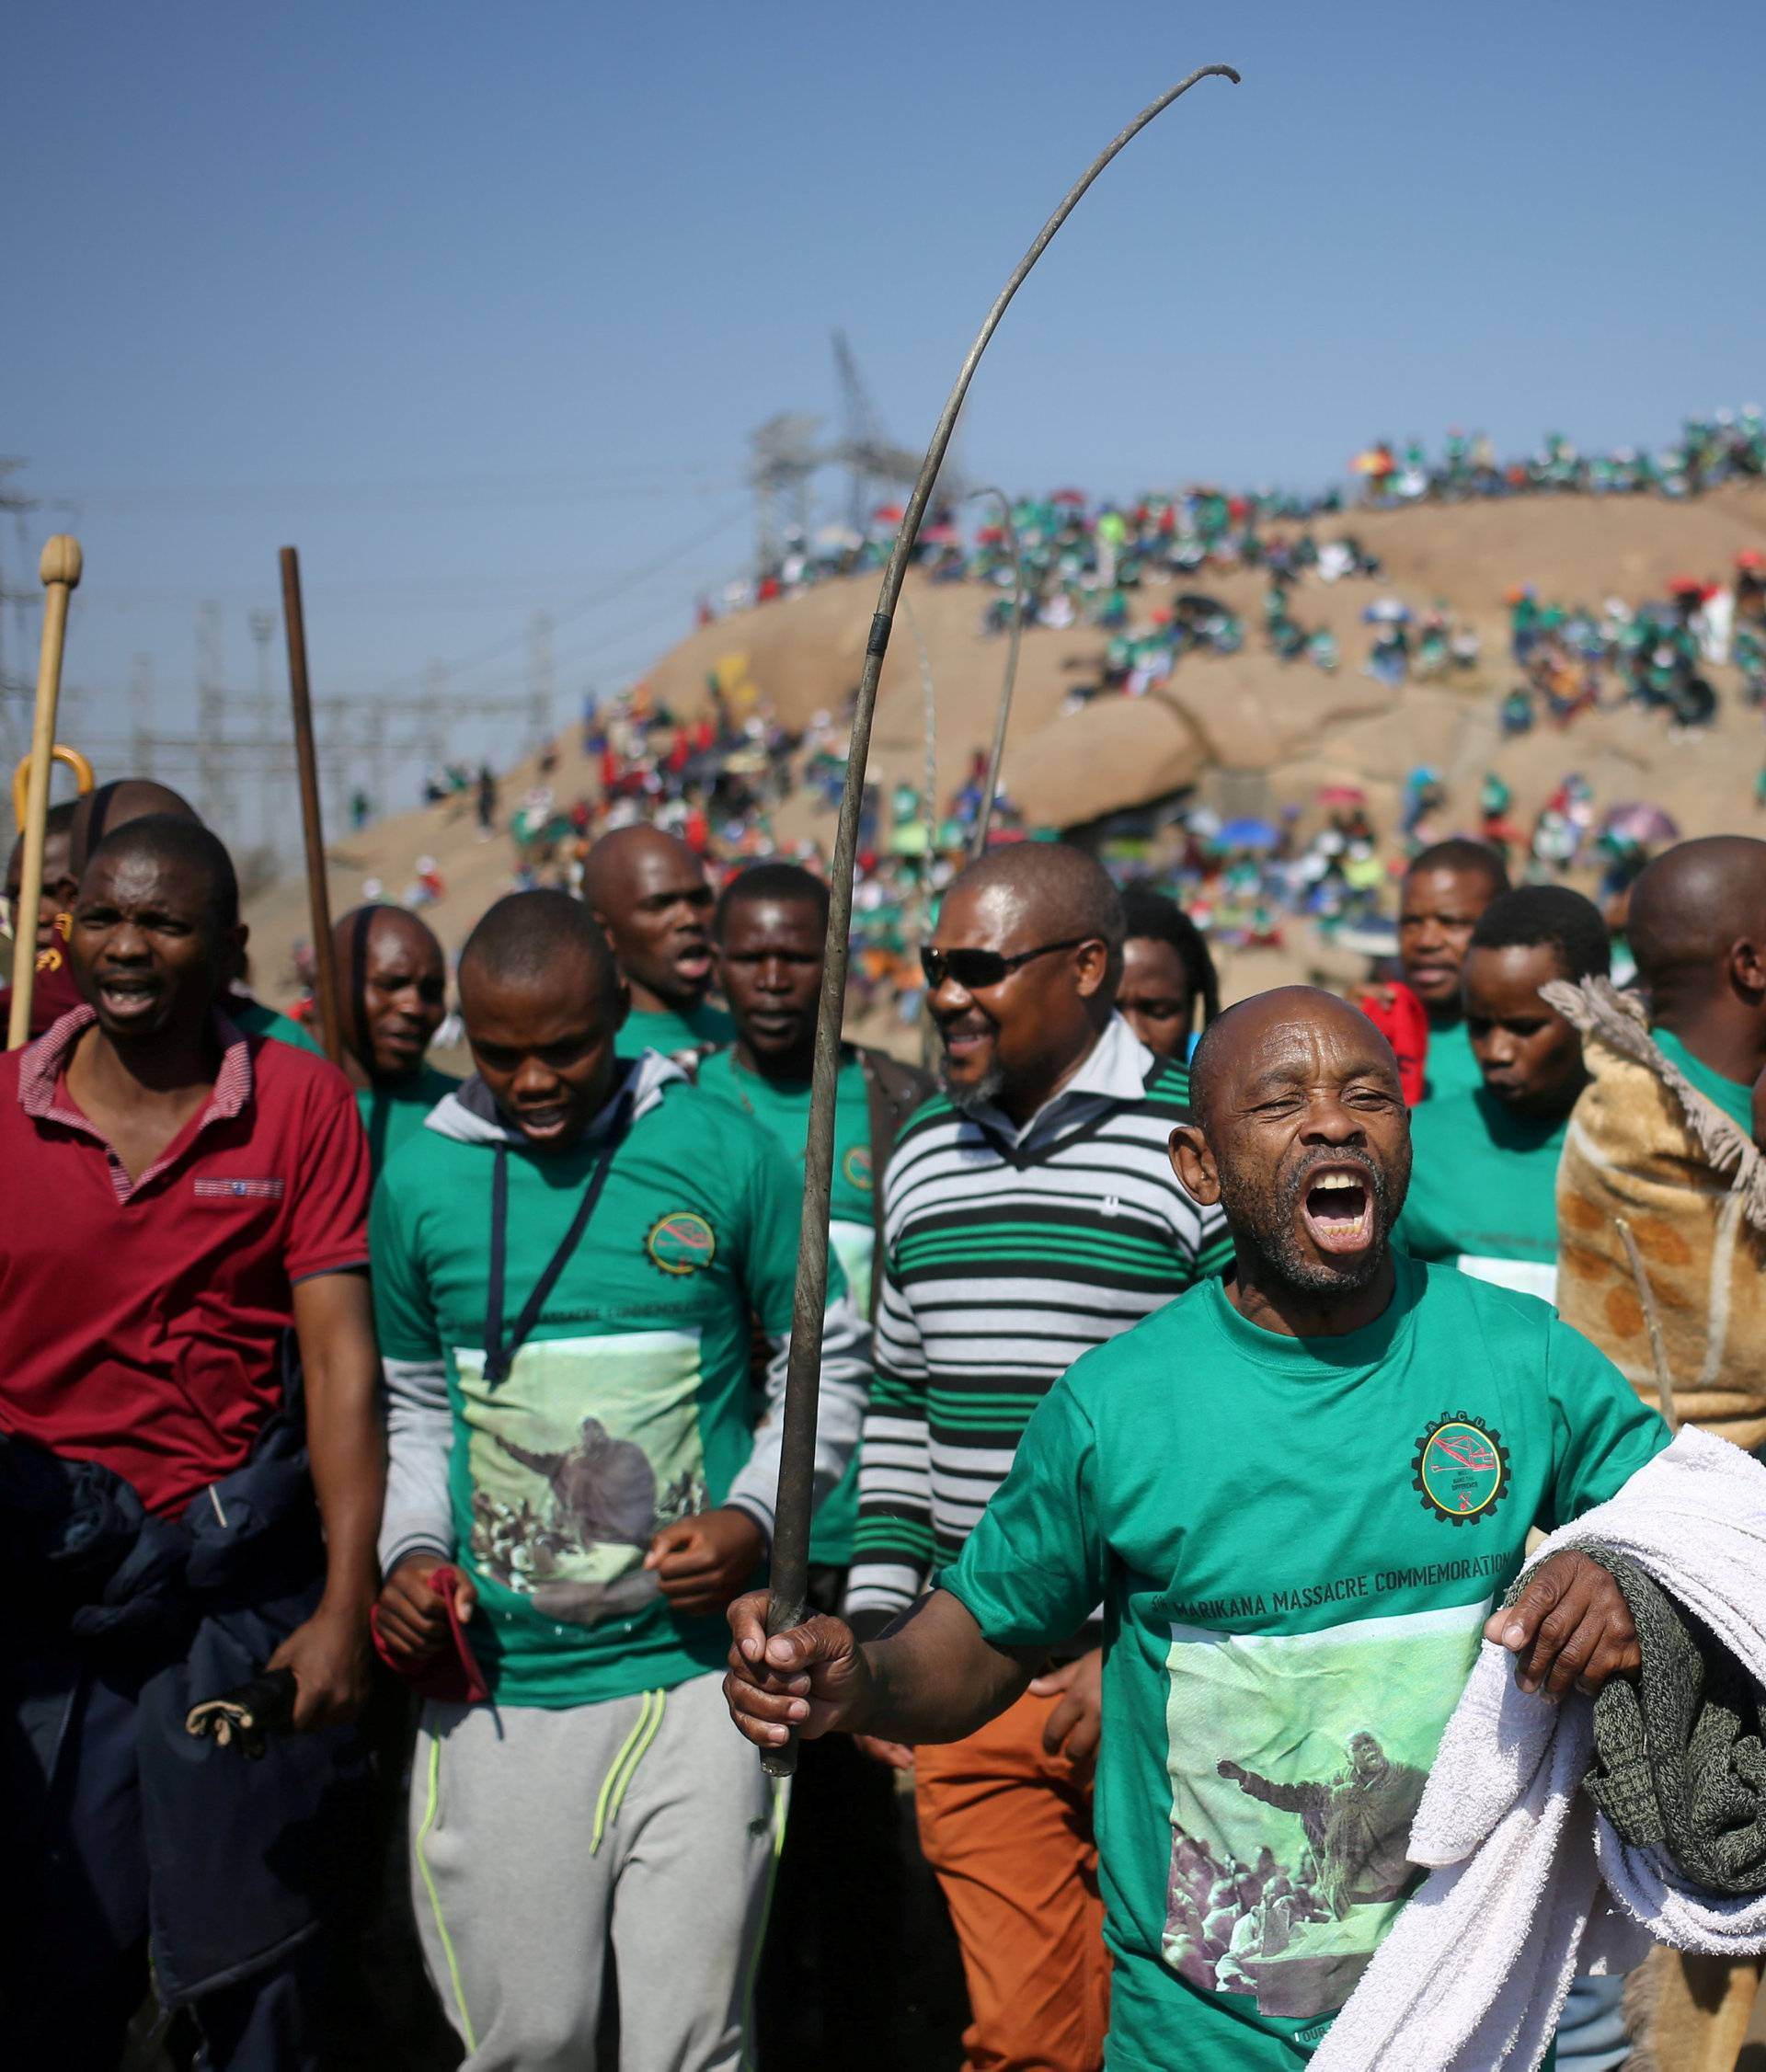 FILE PHOTO: Miners and members of the Association of Mineworkers and Construction Union (AMCU) sing during the 5th-year anniversary commemorations in Rustenburg